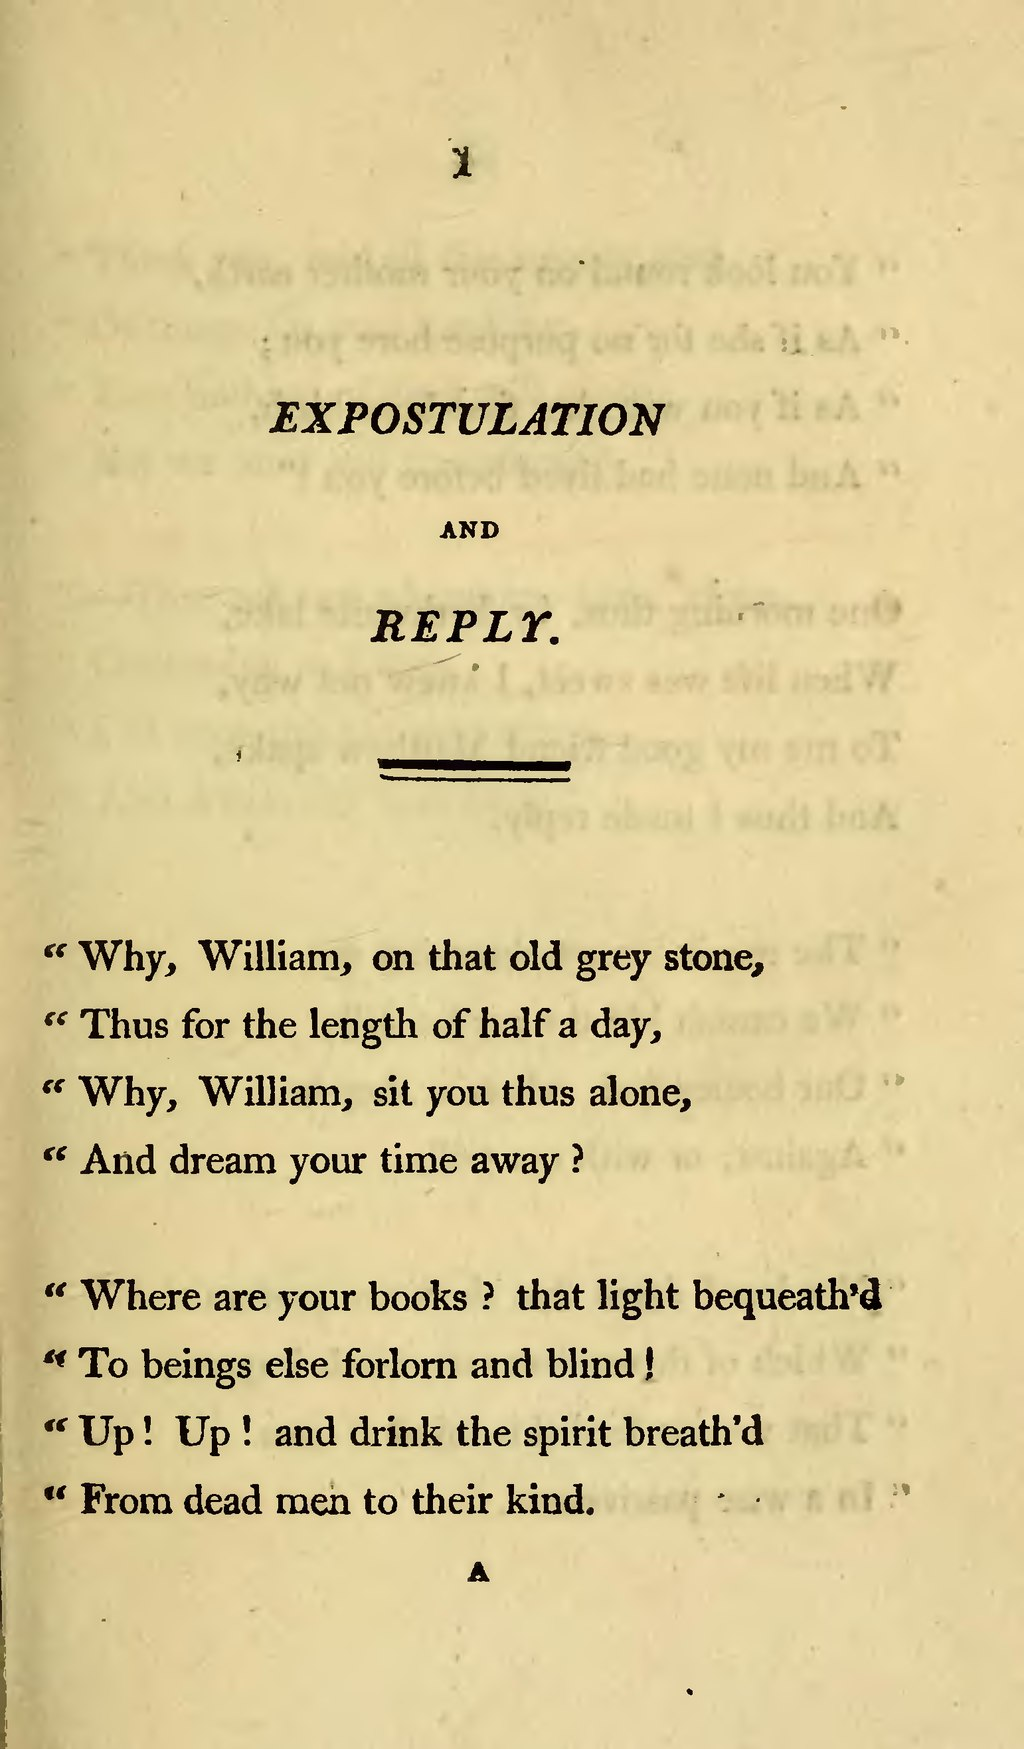 wordsworth expostulation and reply